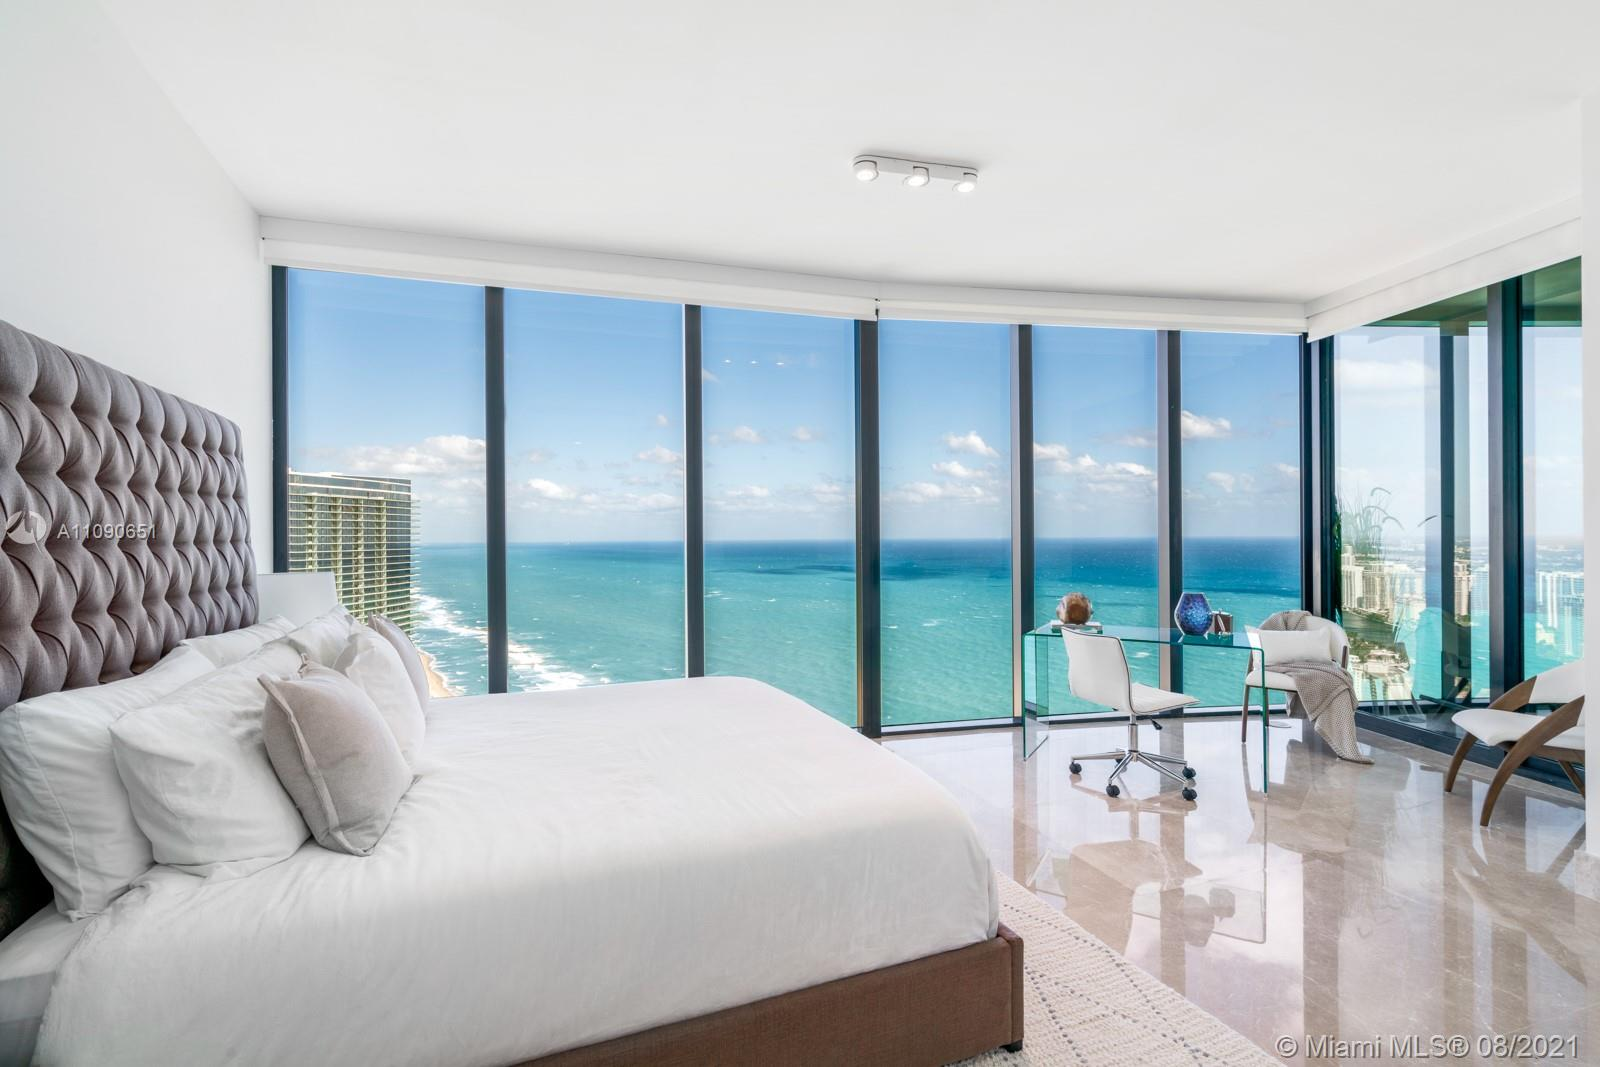 18555 Collins Ave, Unit #5105 Luxury Real Estate